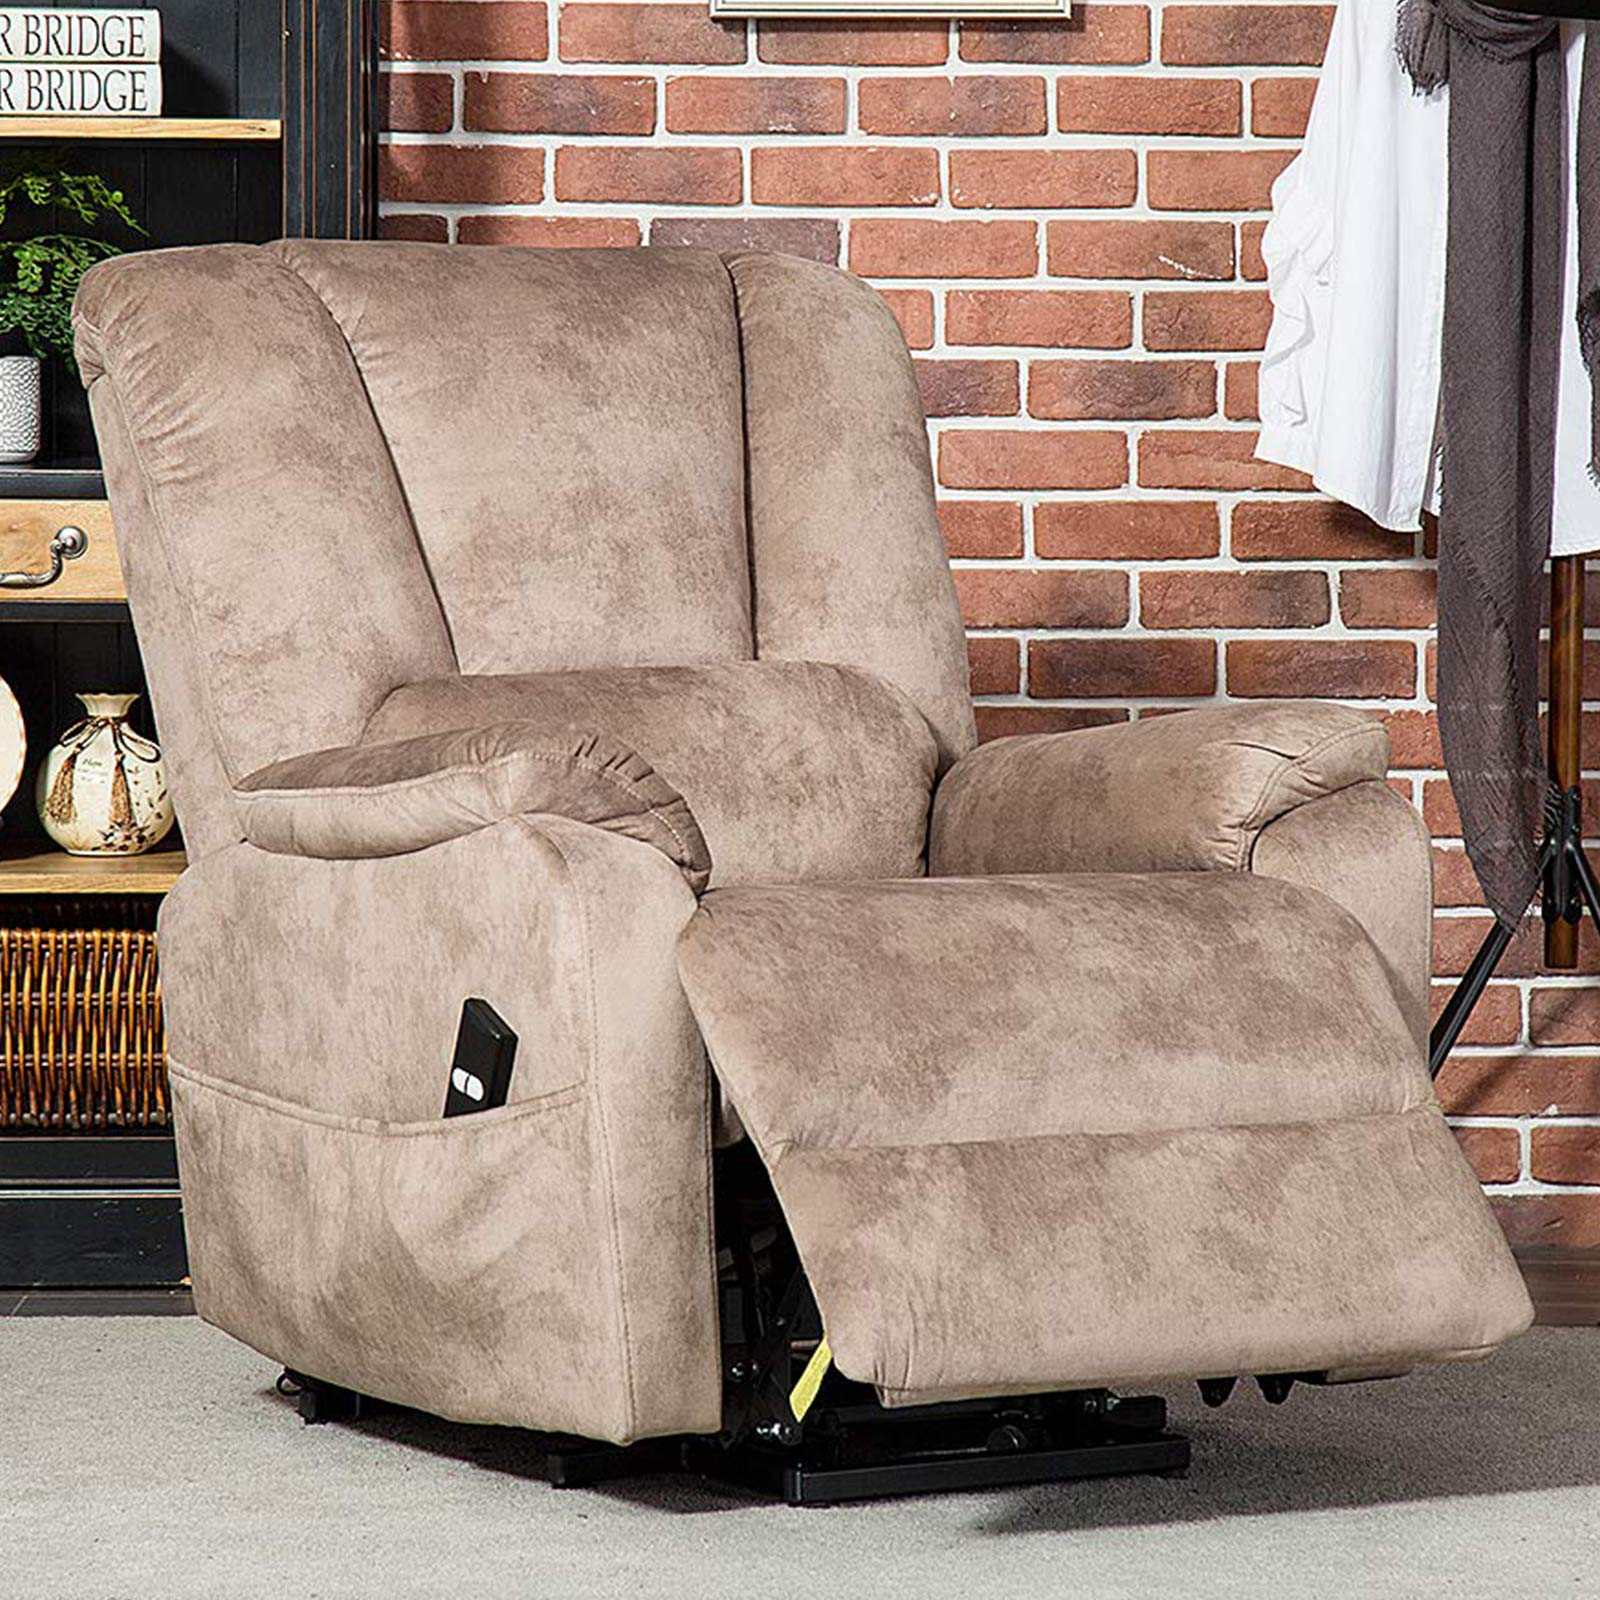 CANMOV Power Lift Recliner Chair for Elderly- Heavy Duty and Safety Motion Reclining Mechanism-Antiskid Fabric Sofa Living Room Chair with Overstuffed Design, Camel by CANMOV